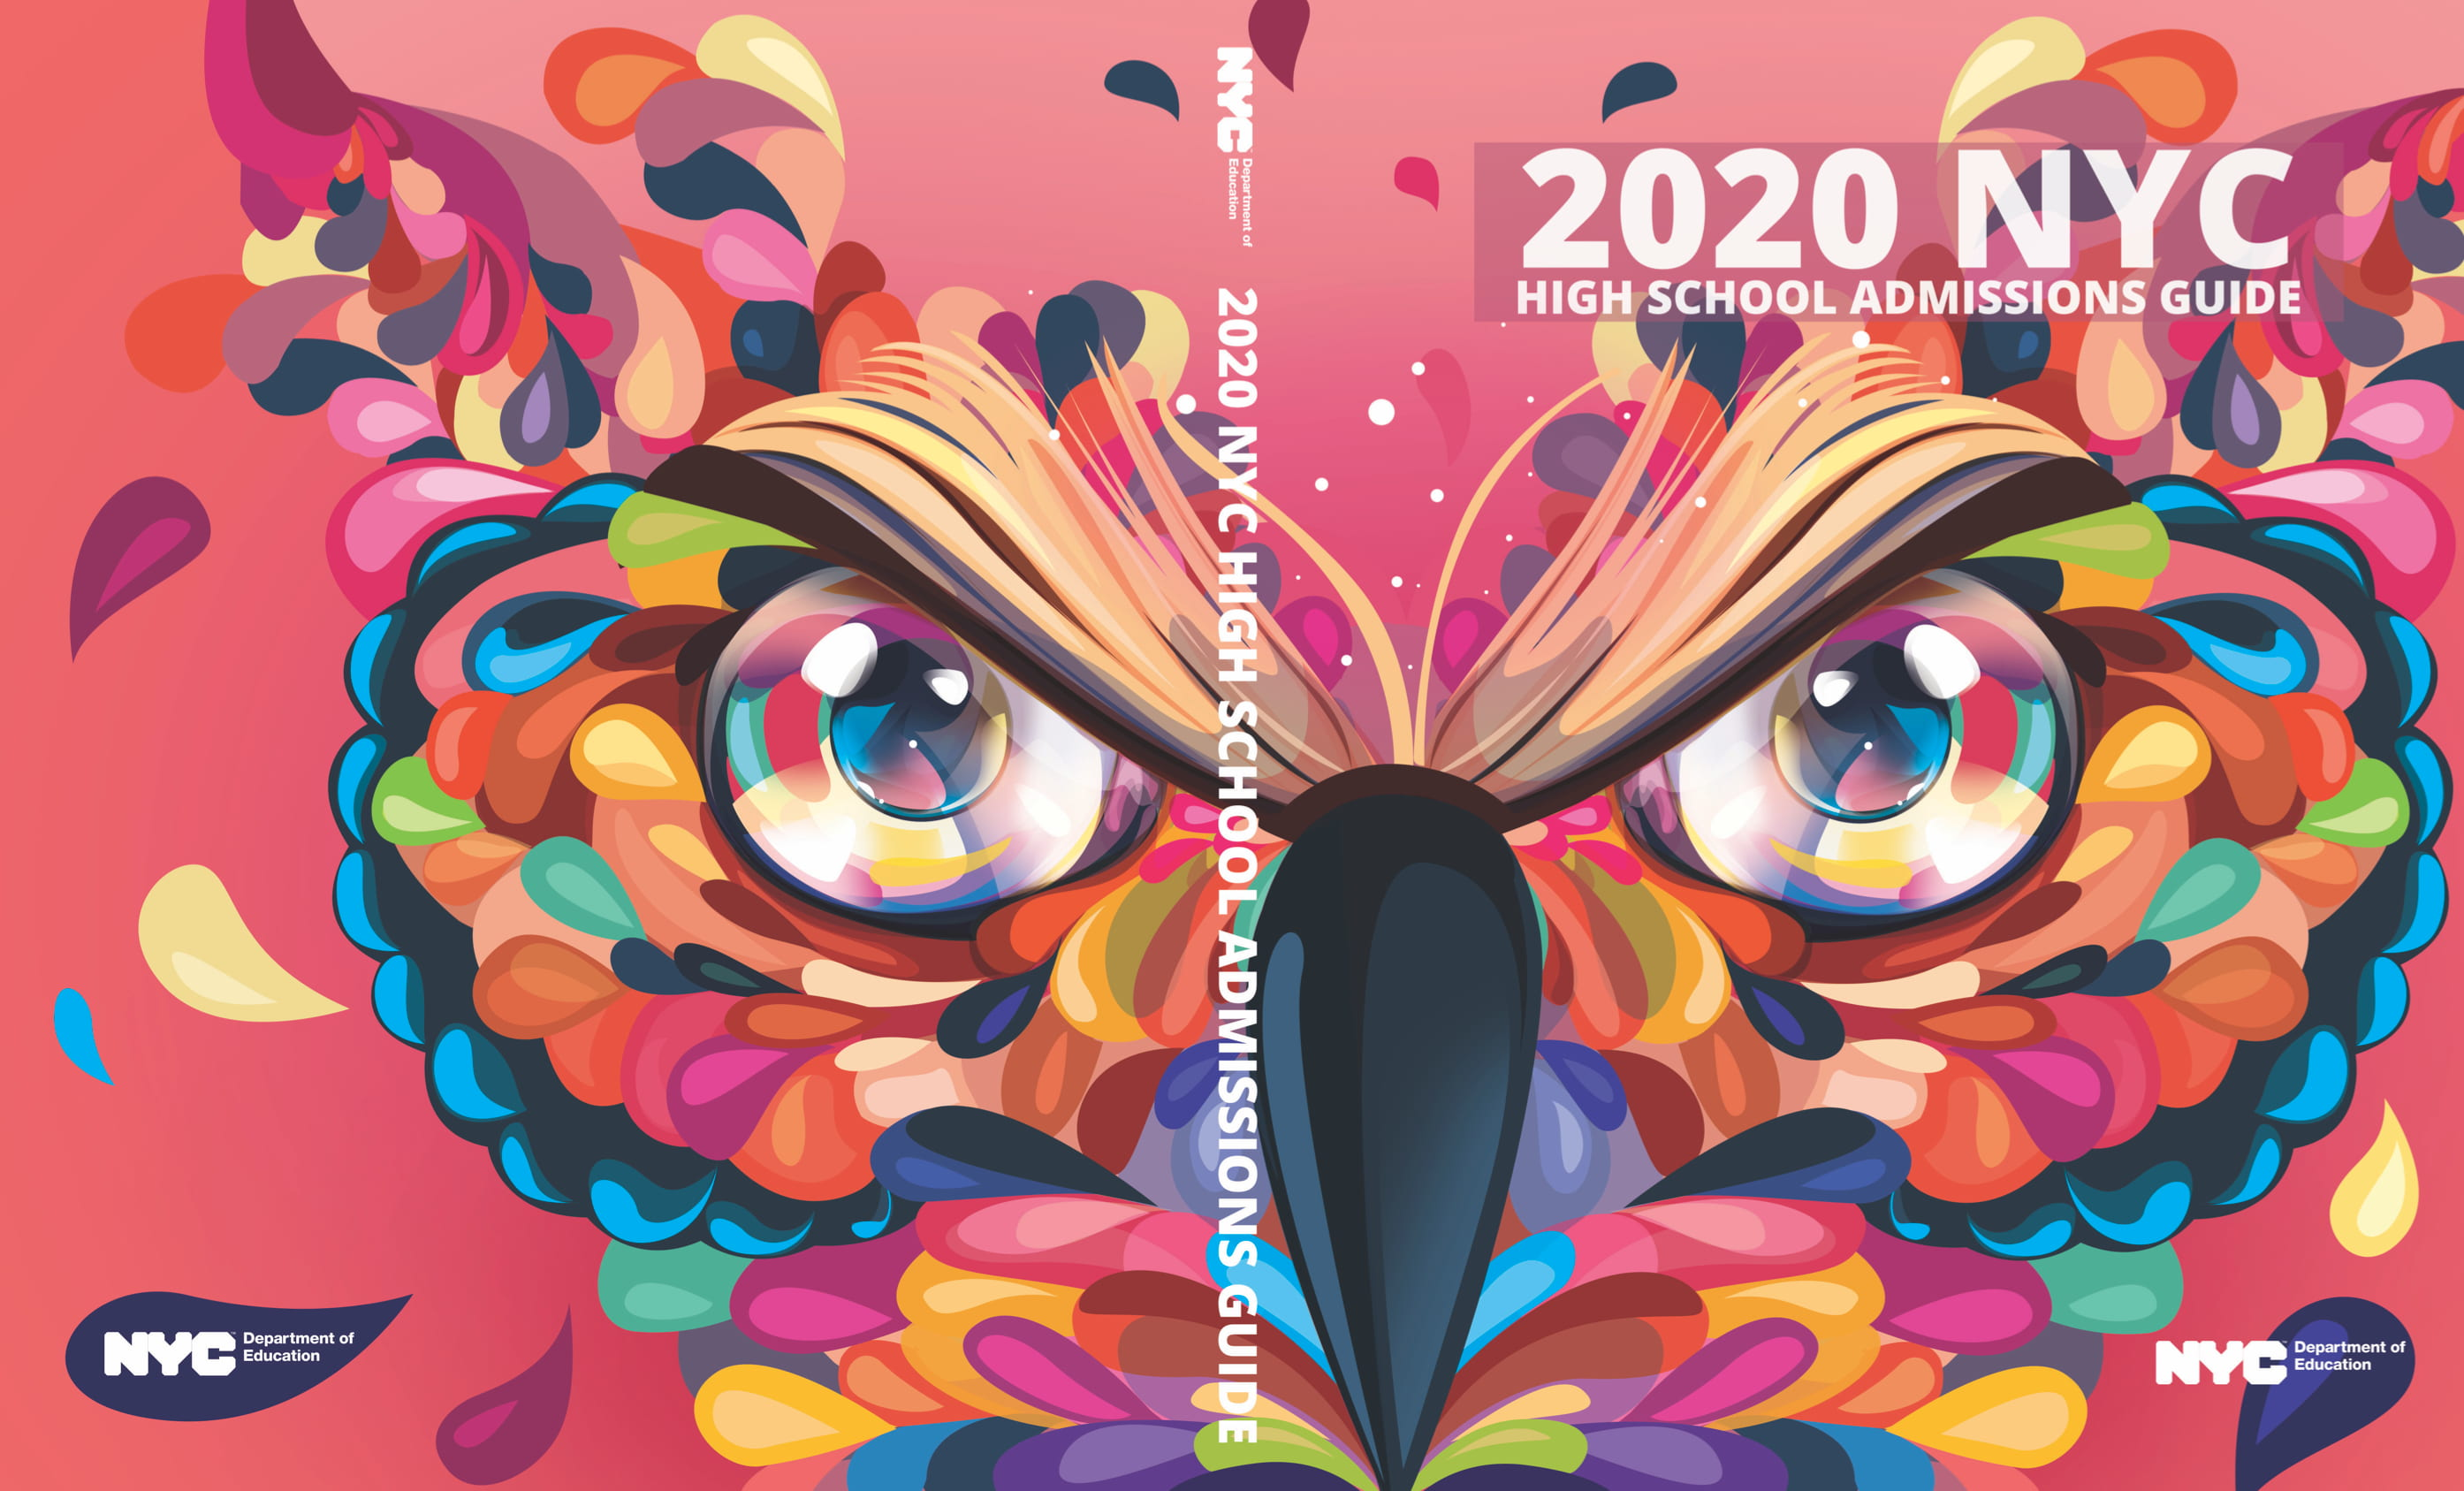 The cover showcases the head of an owl made up of freeform shapes and bright colors. The owl's head is spread across both the cover and the back cover, with the beak and middle of his brow on the spine. The owl's brow is also the representing the pages of an open book.